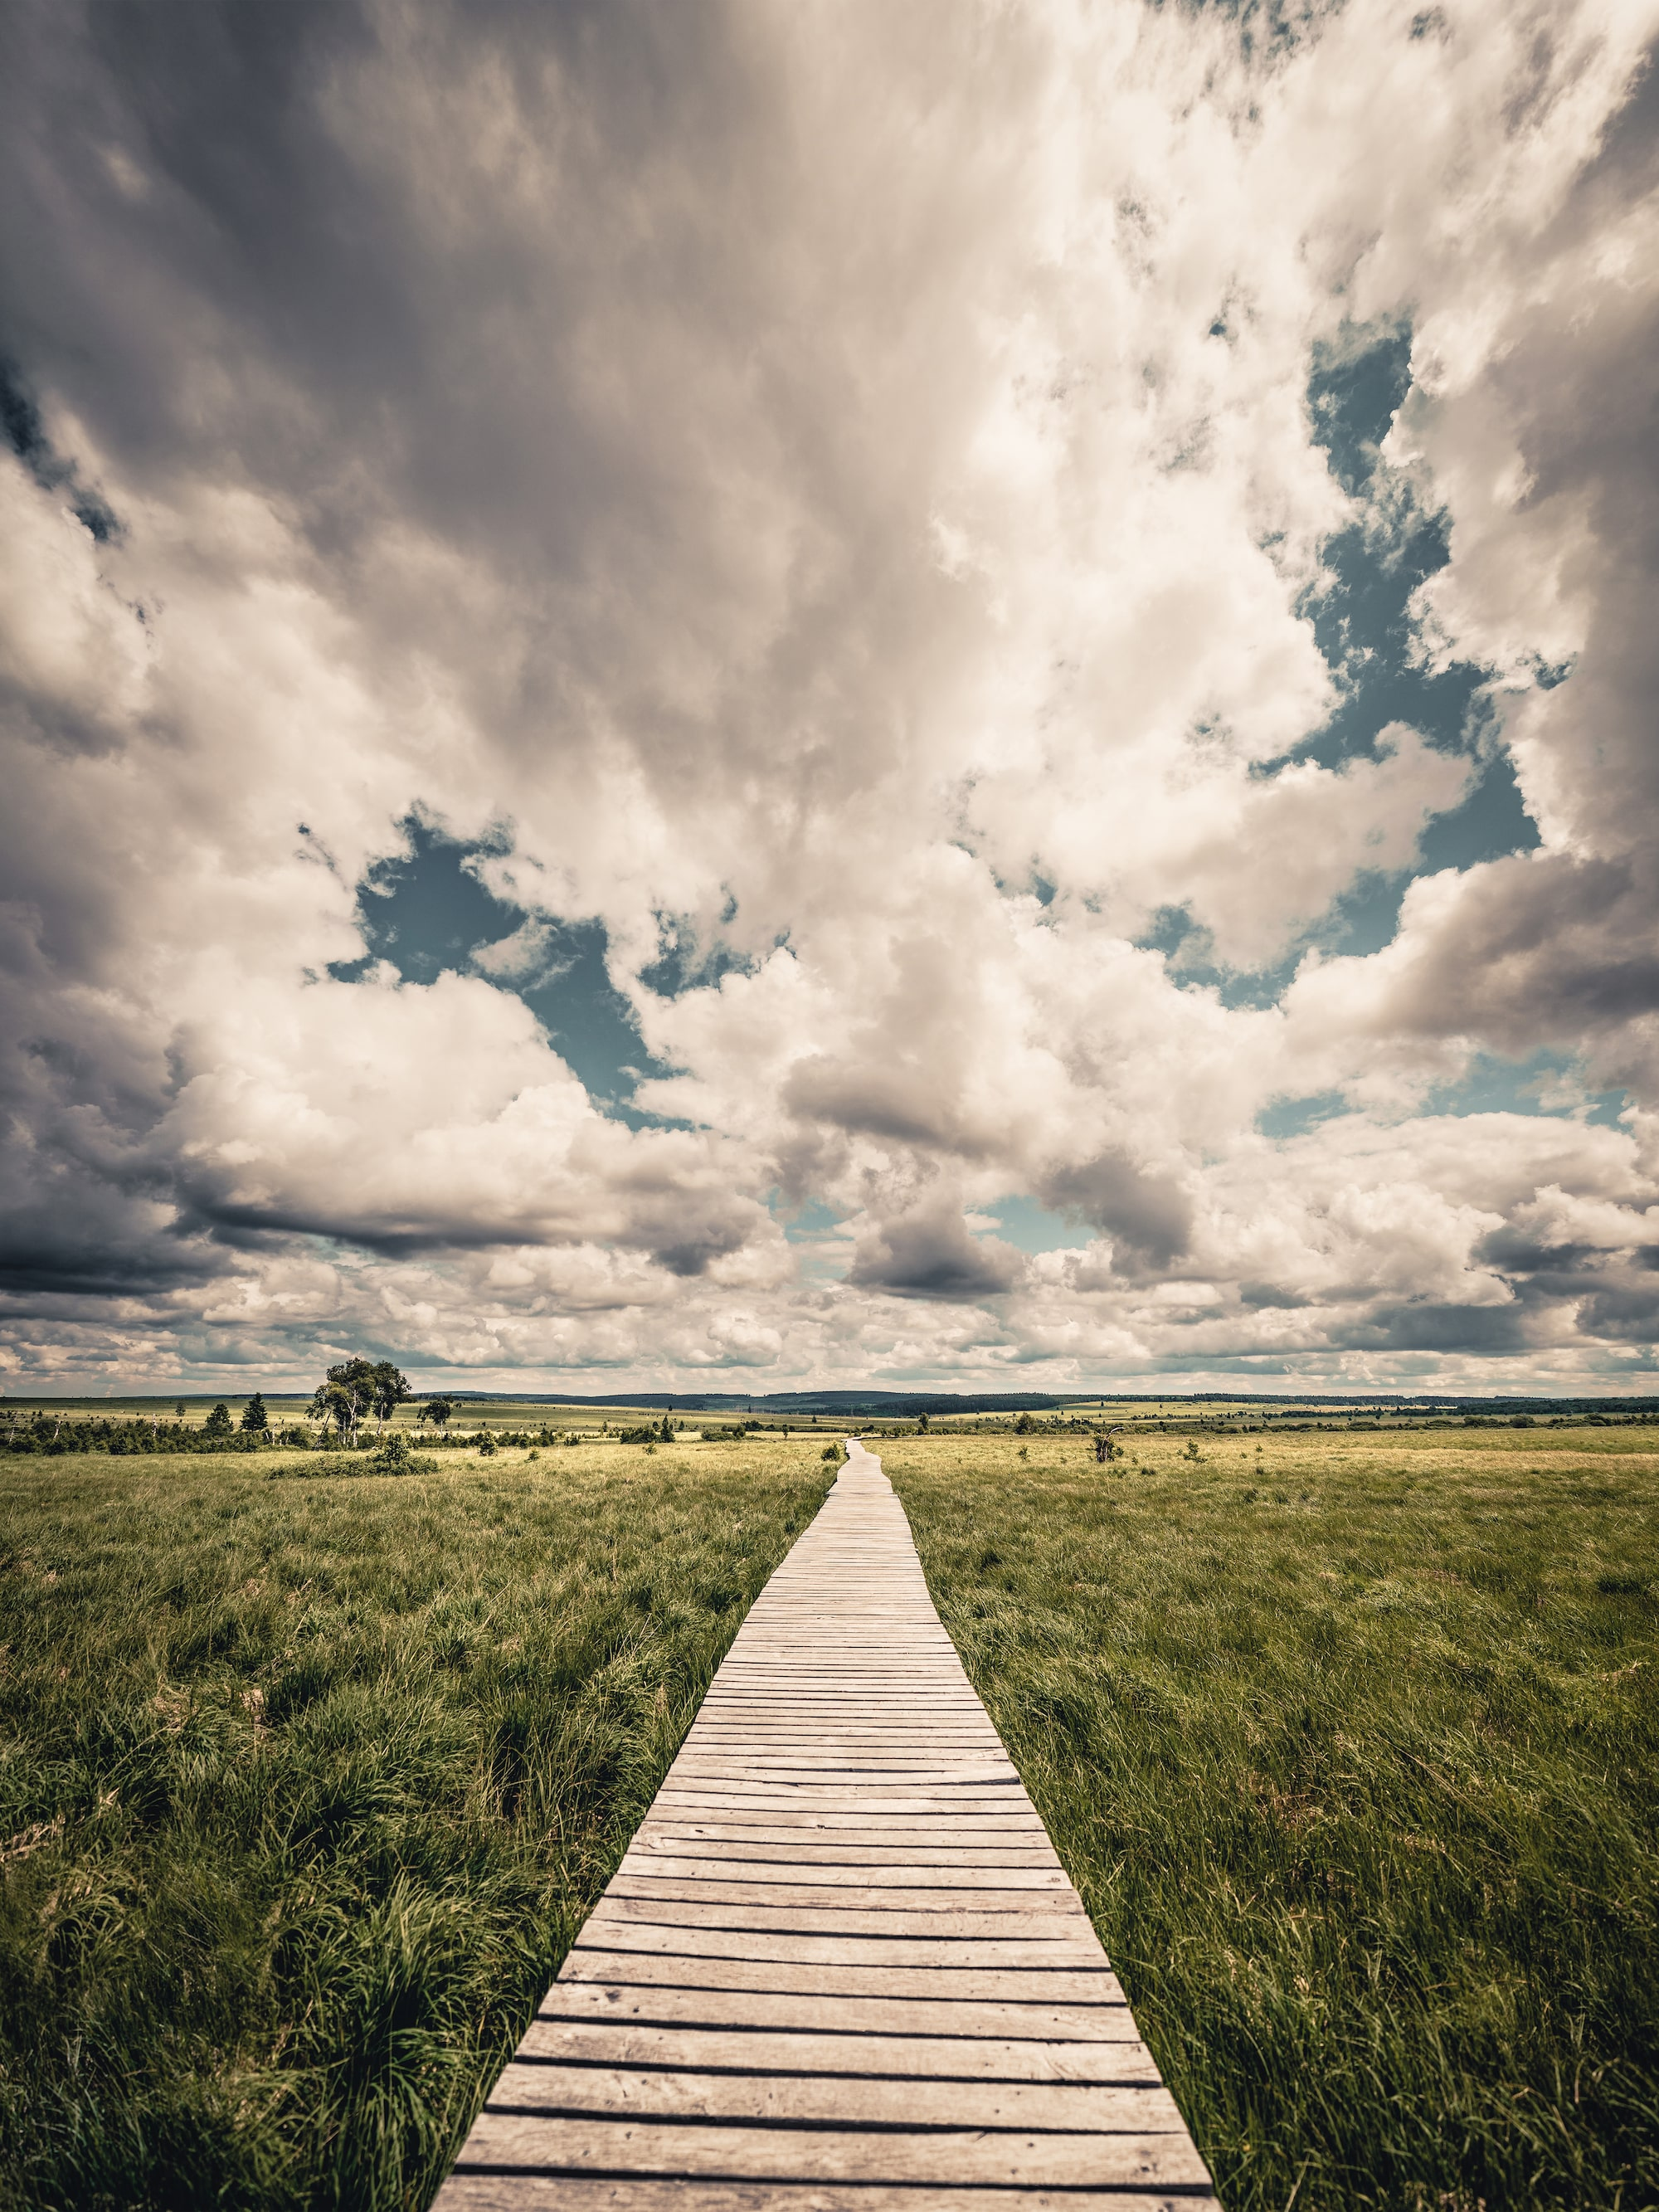 michael schaake sony alpha 7RM4 a wooden path leads off across a field with dramatic skies above